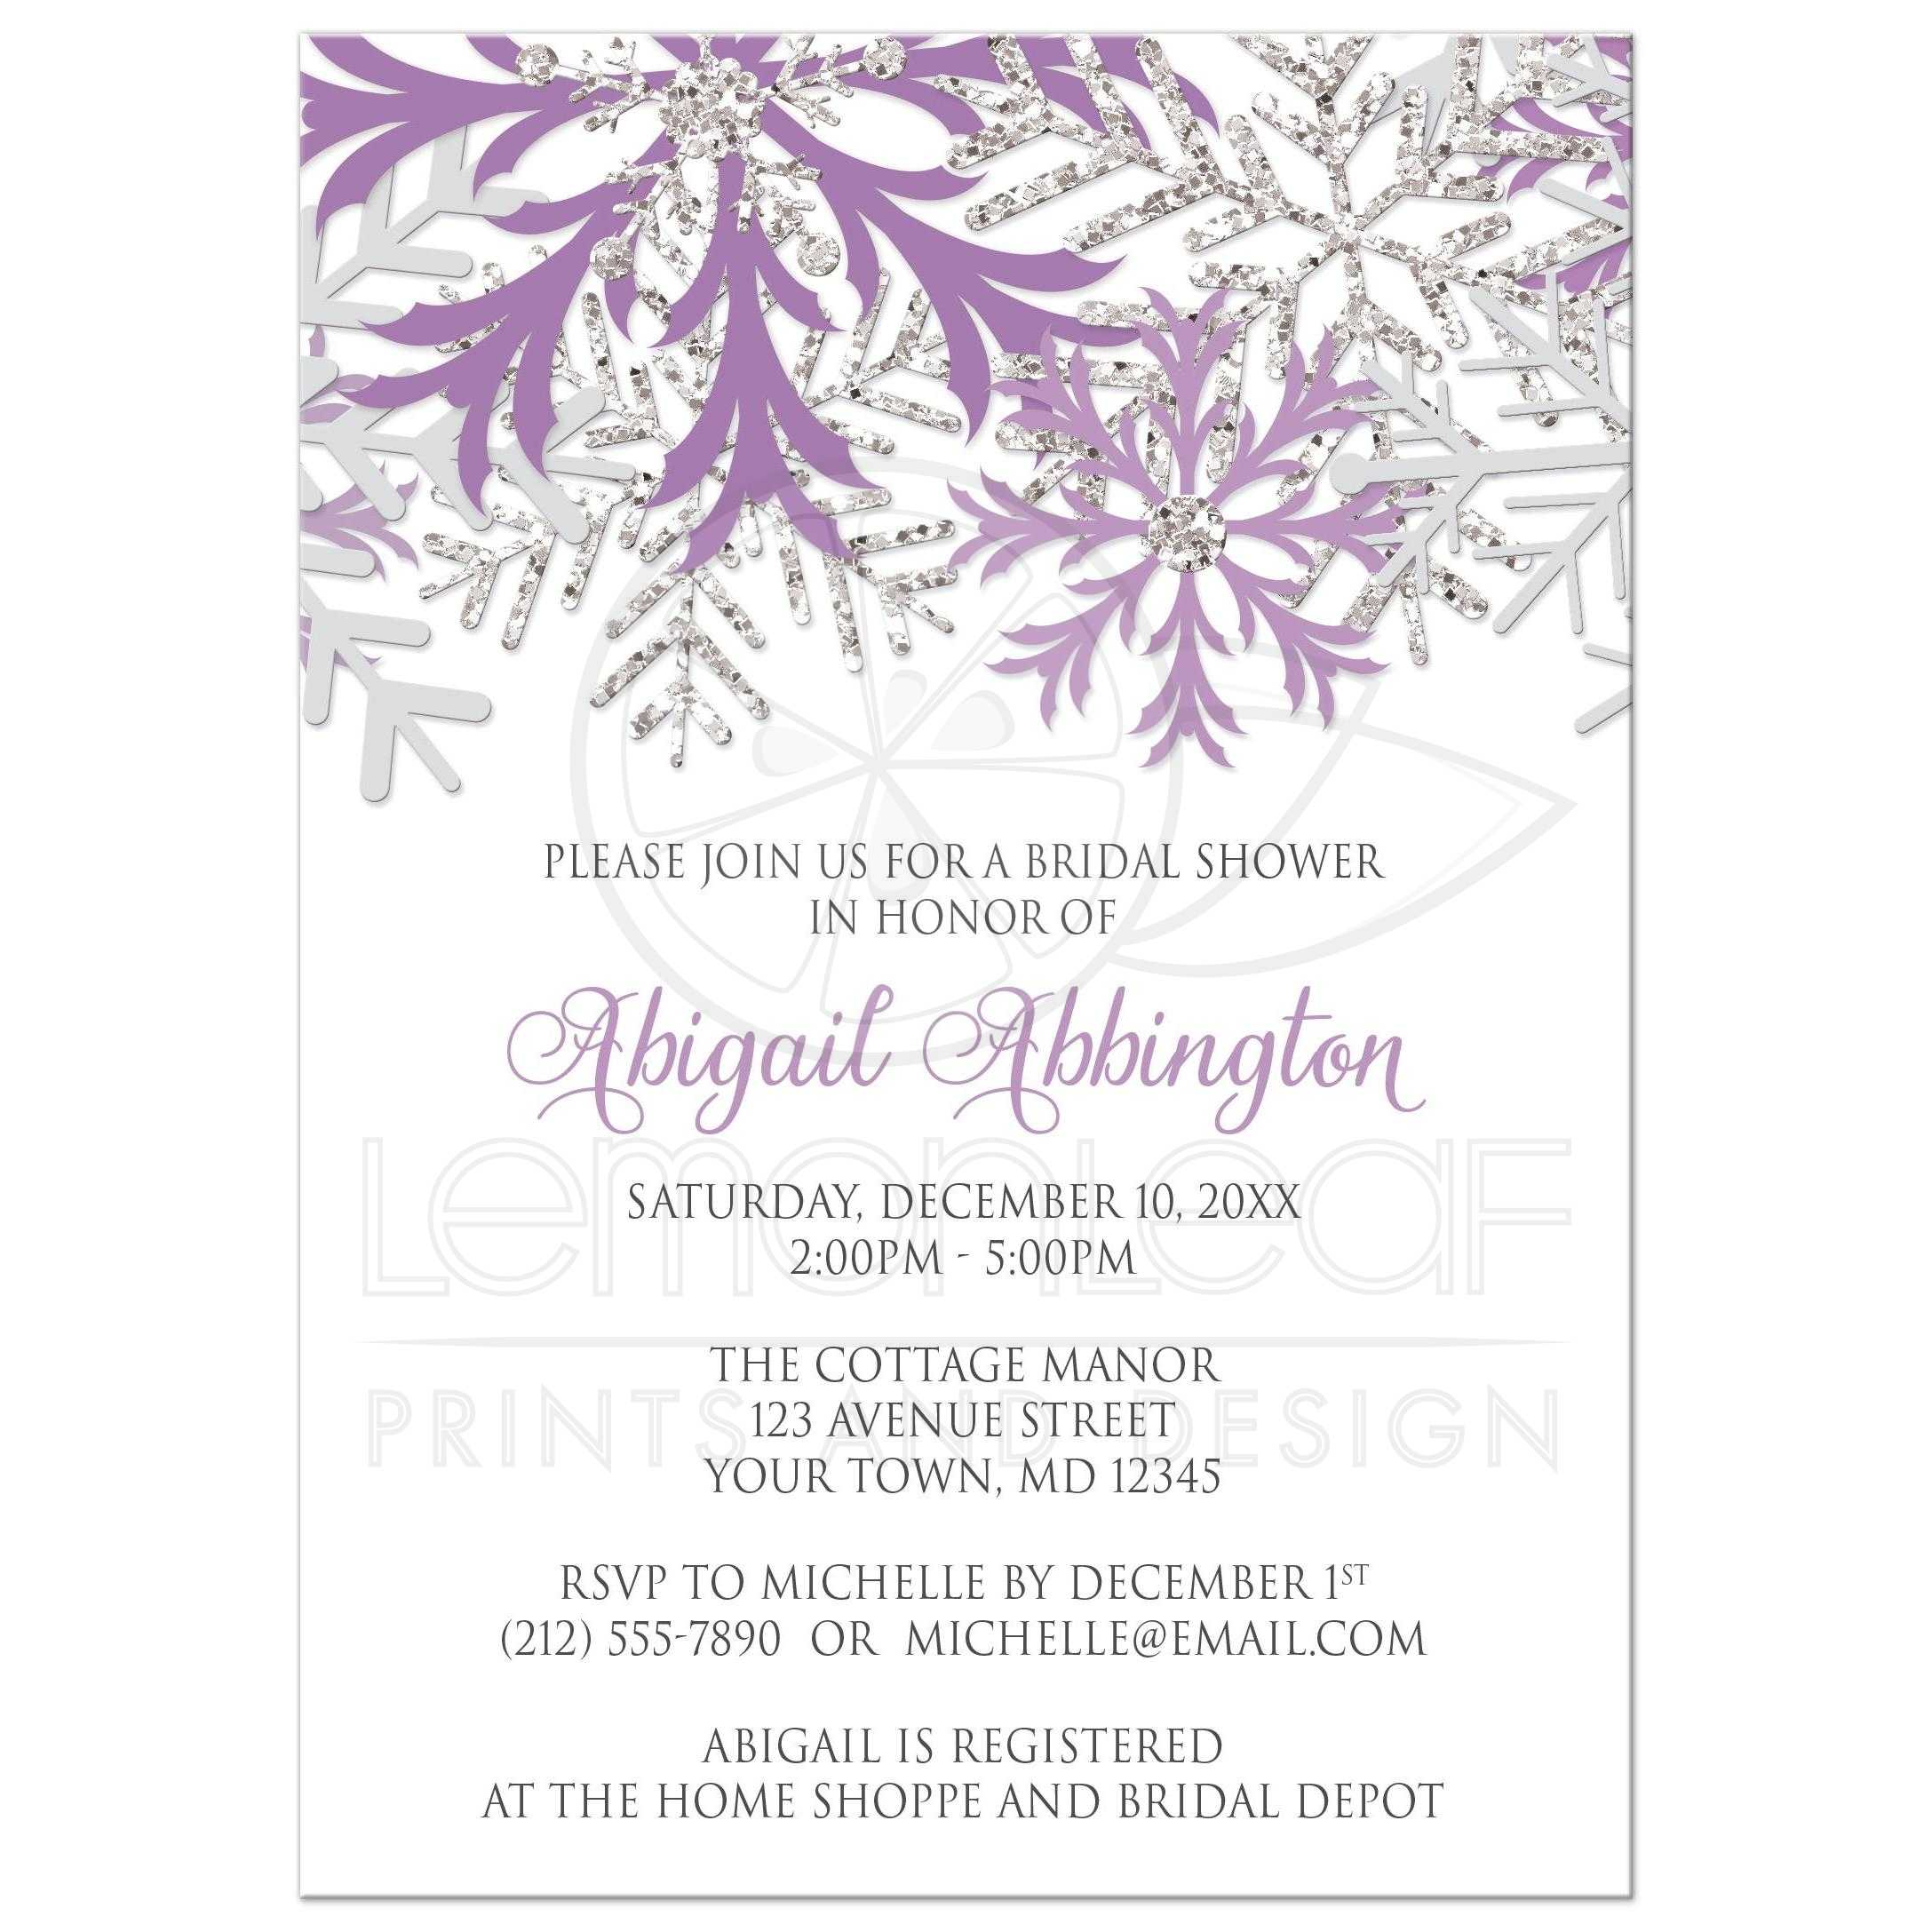 Shower invitations winter snowflake purple silver bridal shower invitations winter snowflake purple silver filmwisefo